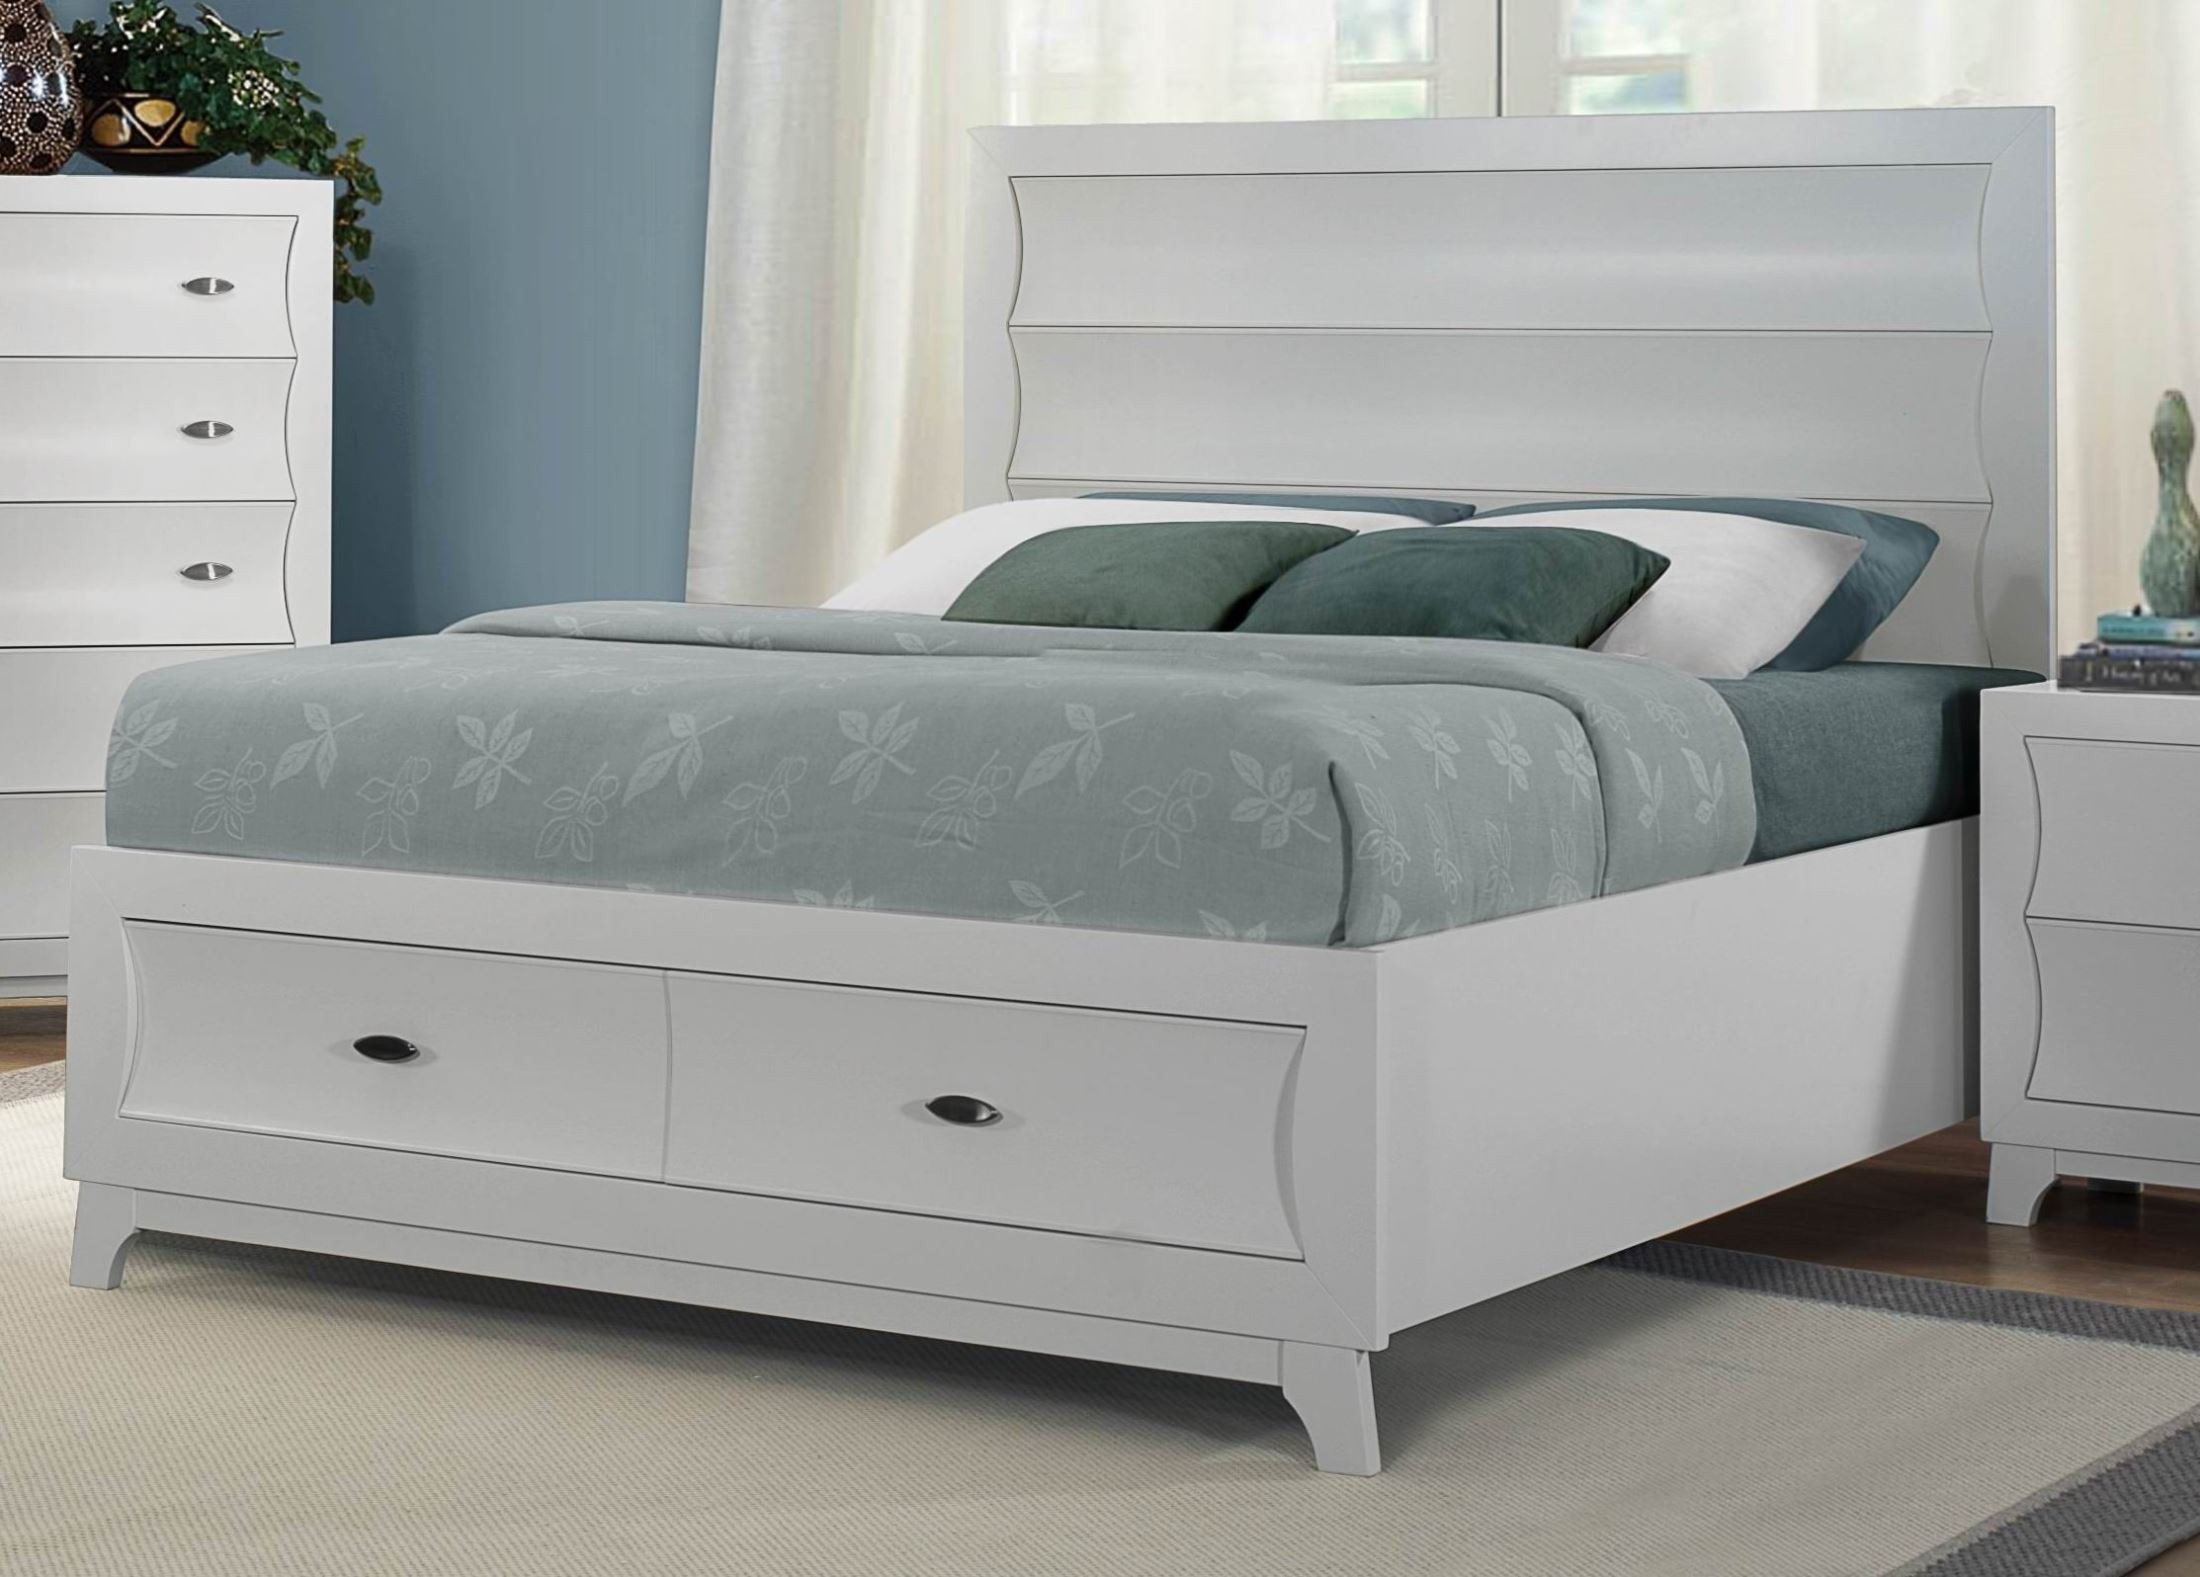 Zandra White Queen Storage Bed From Homelegance 2262w 1